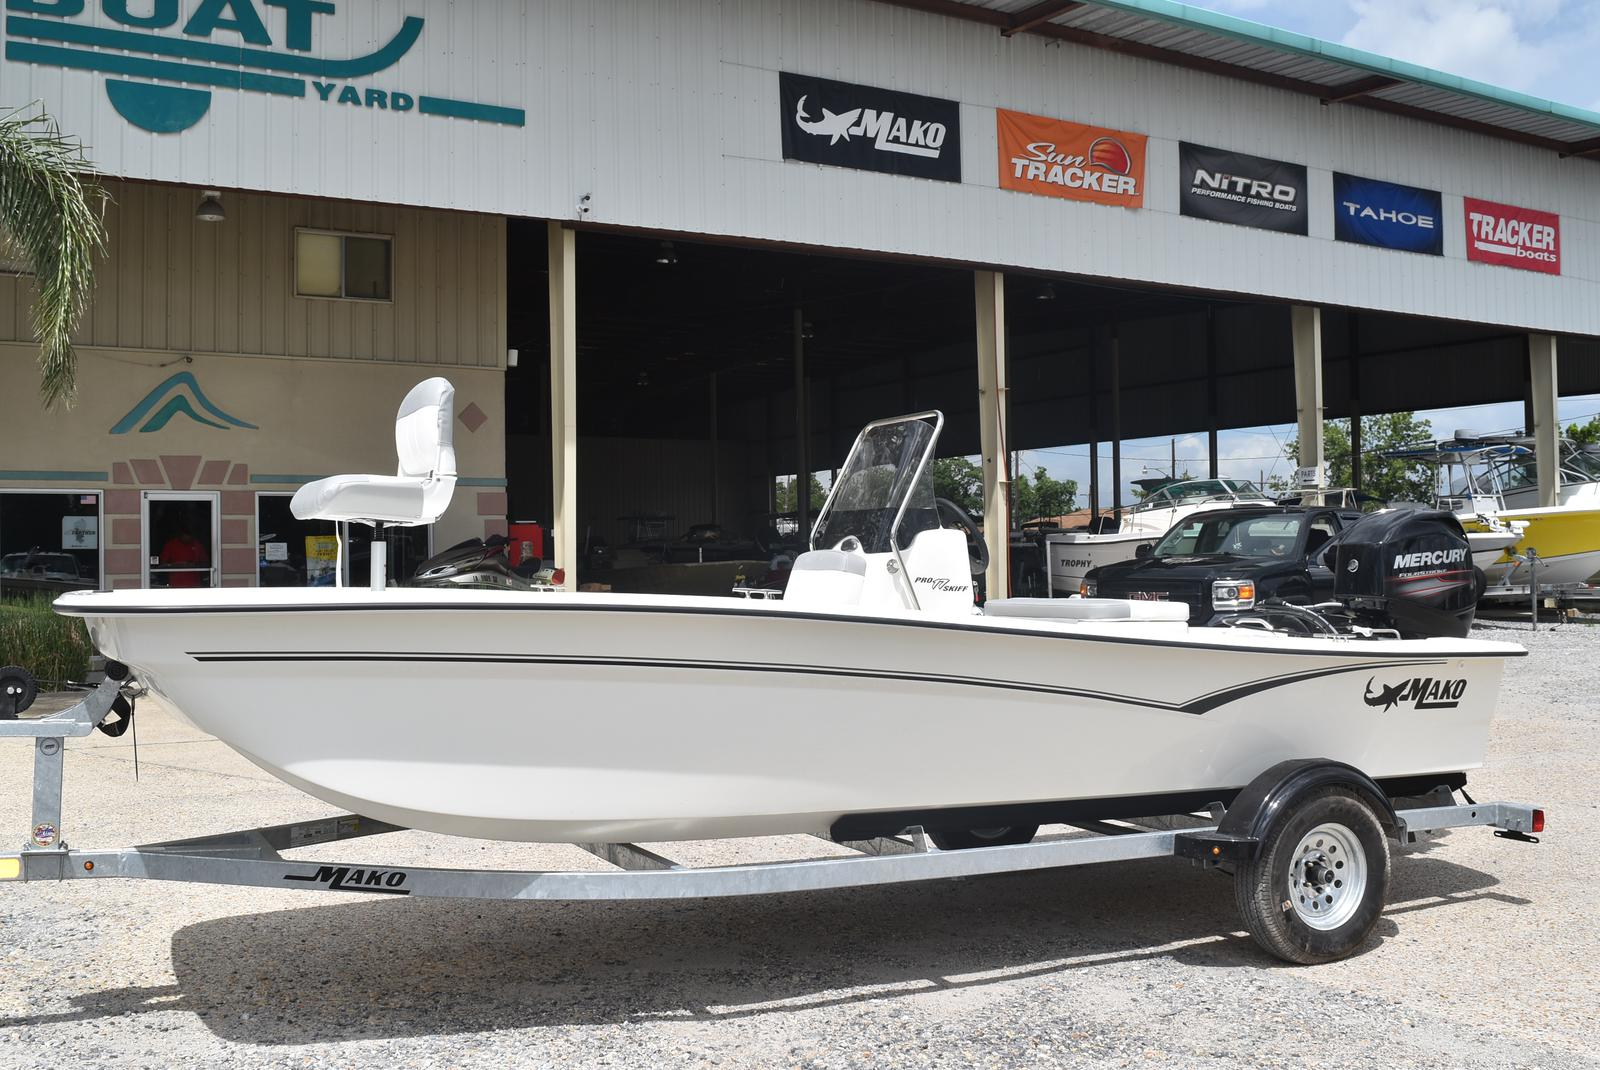 2020 Mako boat for sale, model of the boat is Pro Skiff 17, 75 ELPT & Image # 136 of 702